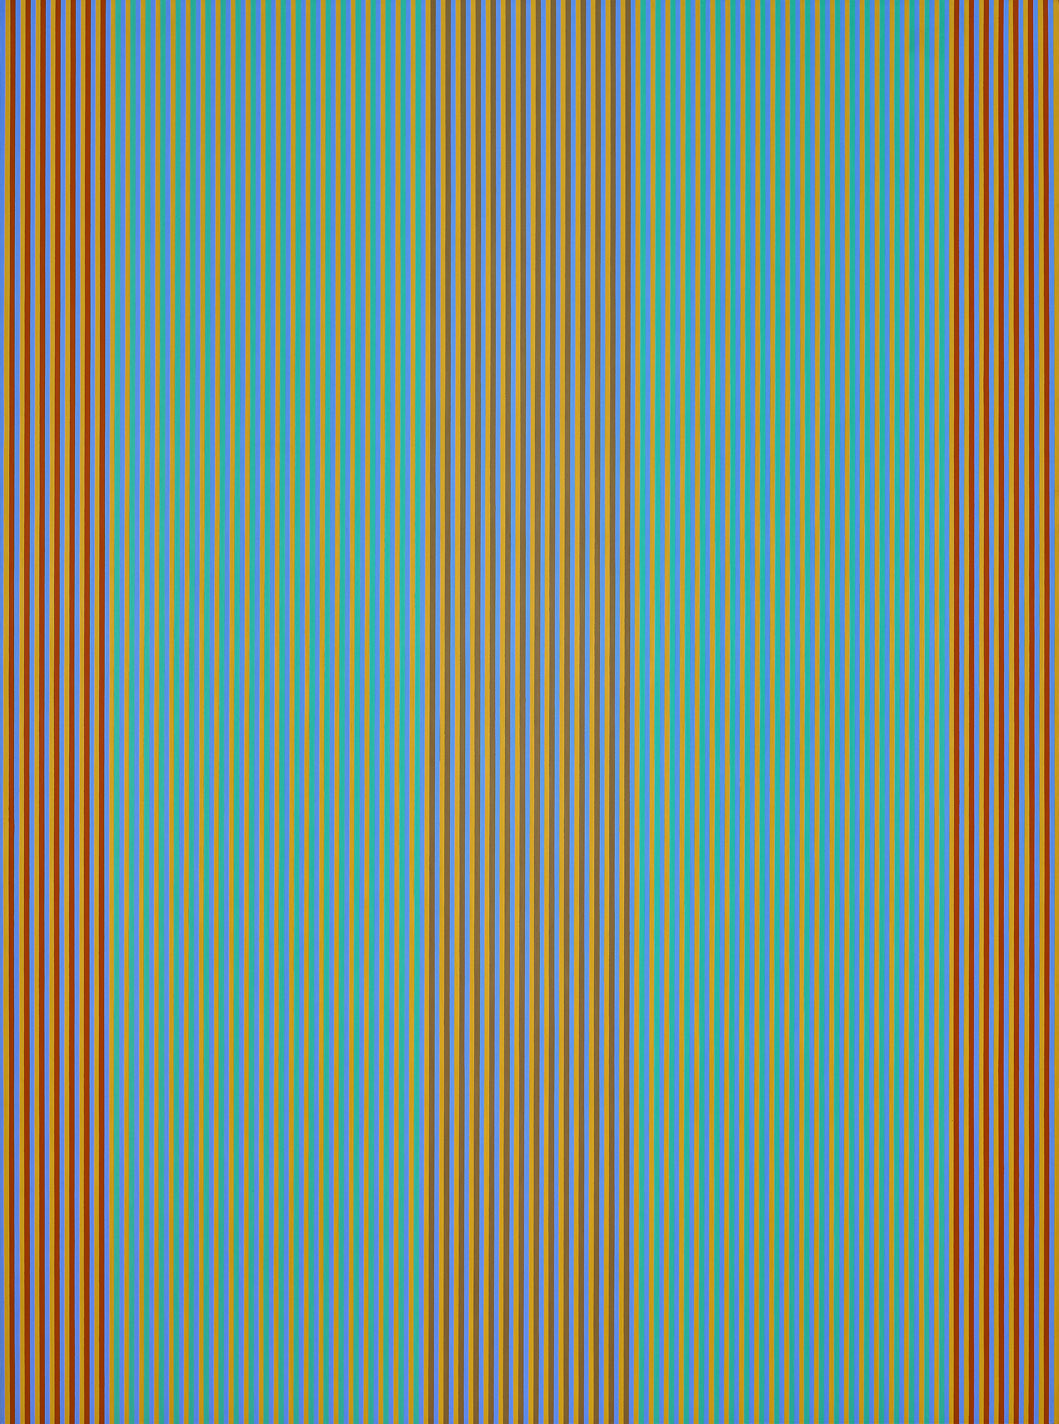 #13 , 1980  oil on canvas 72 x 54 inches; 182.9 x 134.6 centimeters